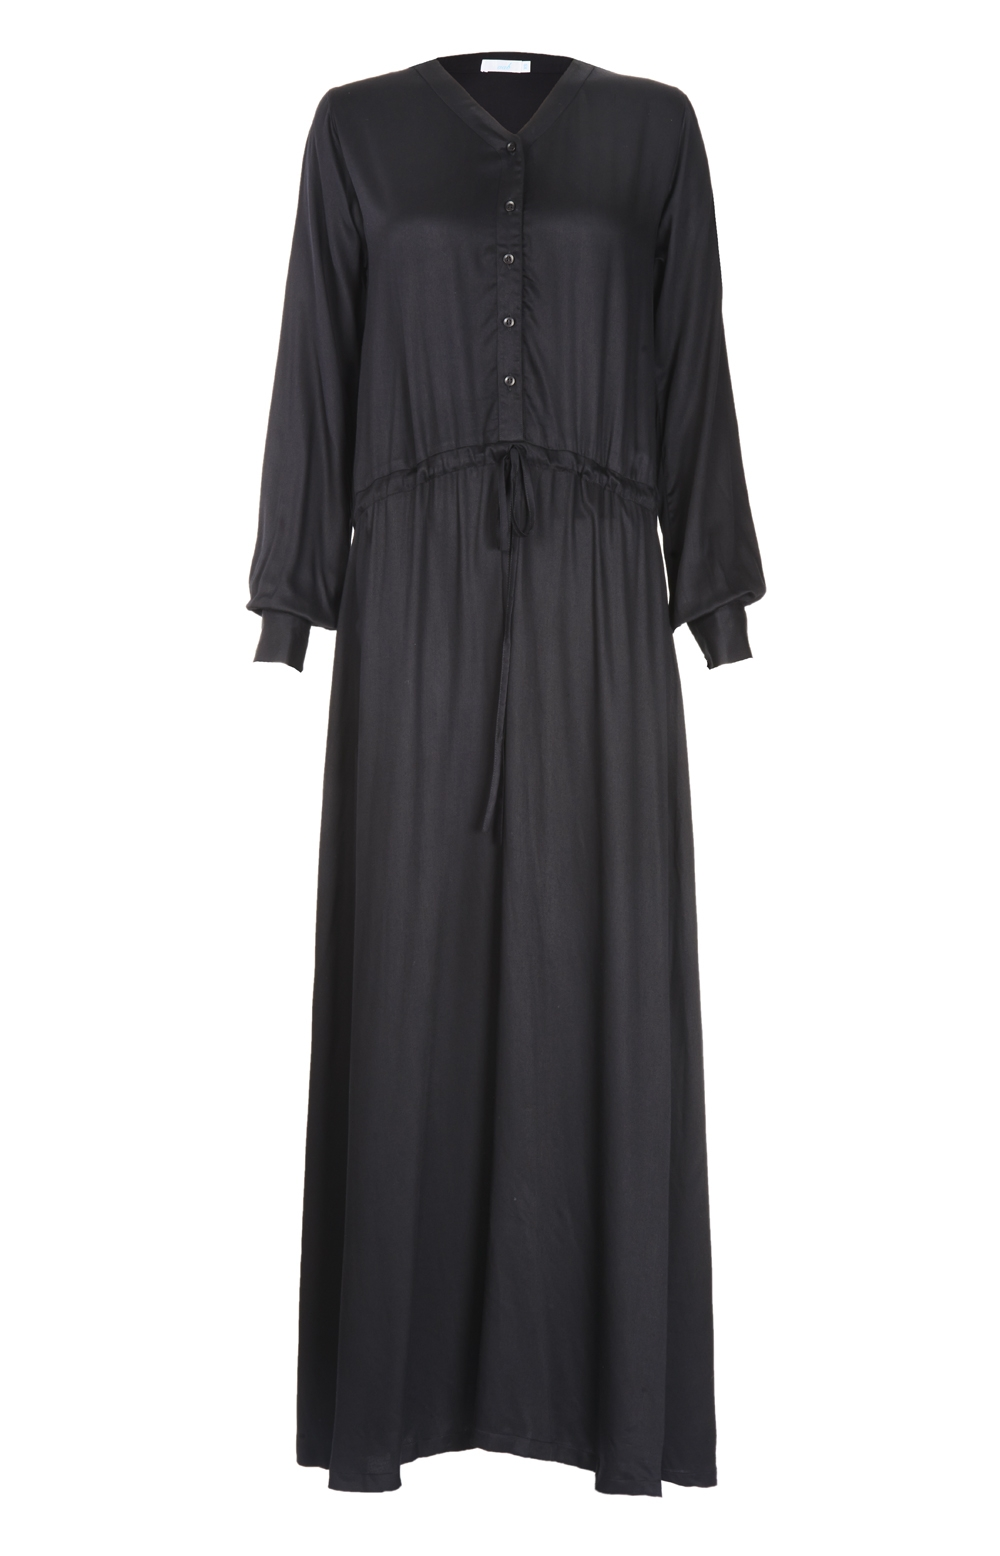 http://www.aabcollection.com/shop/product/sencilla-abaya-black/739